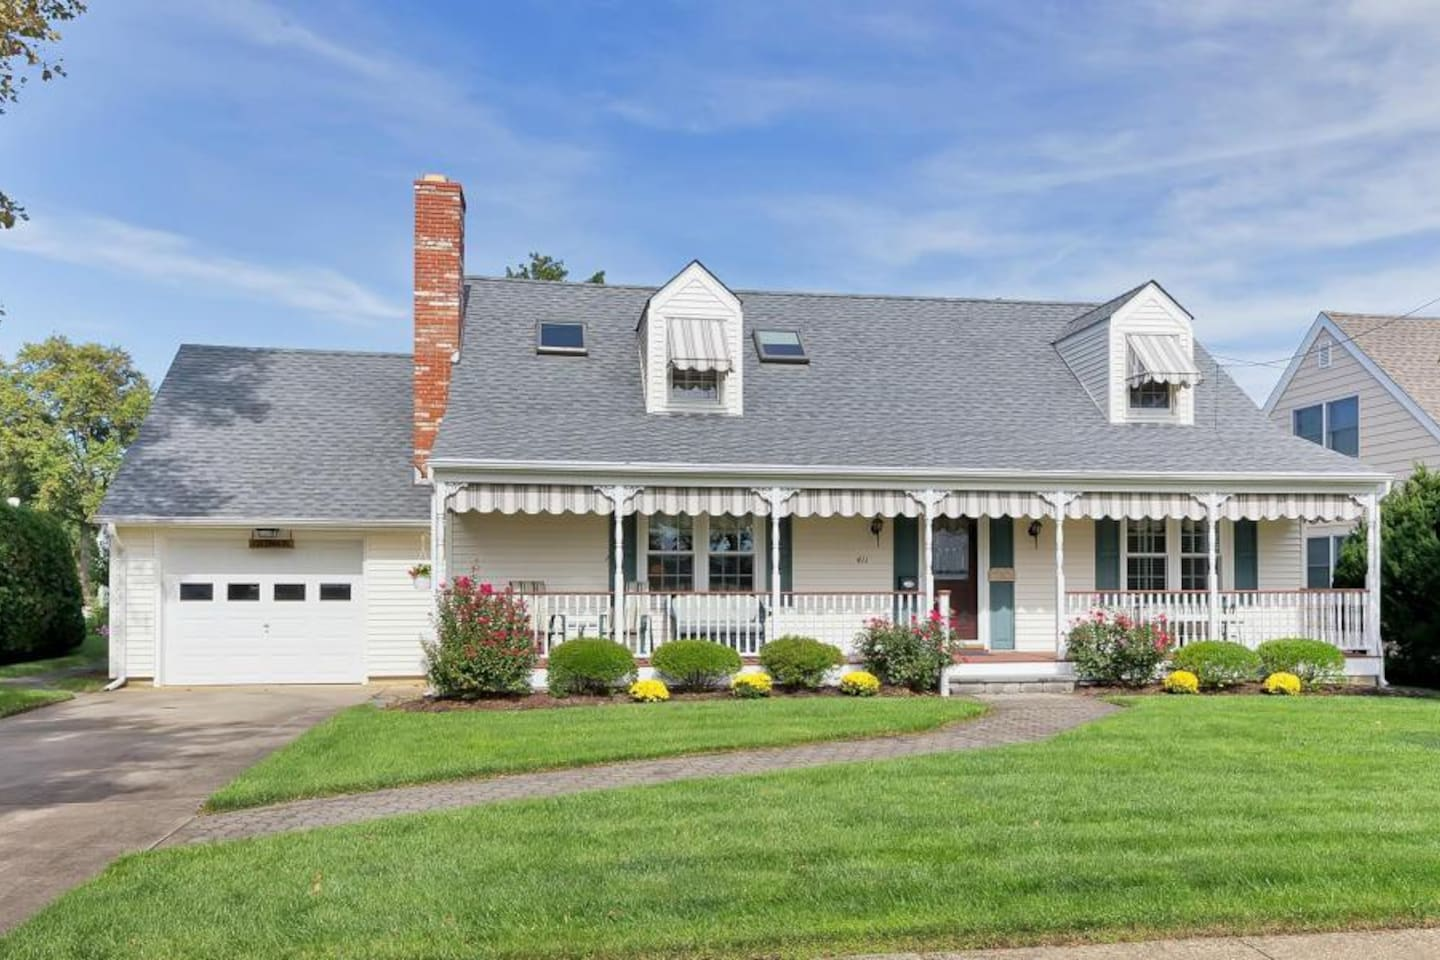 Quaint Cape style 4 bedroom home with full basement.